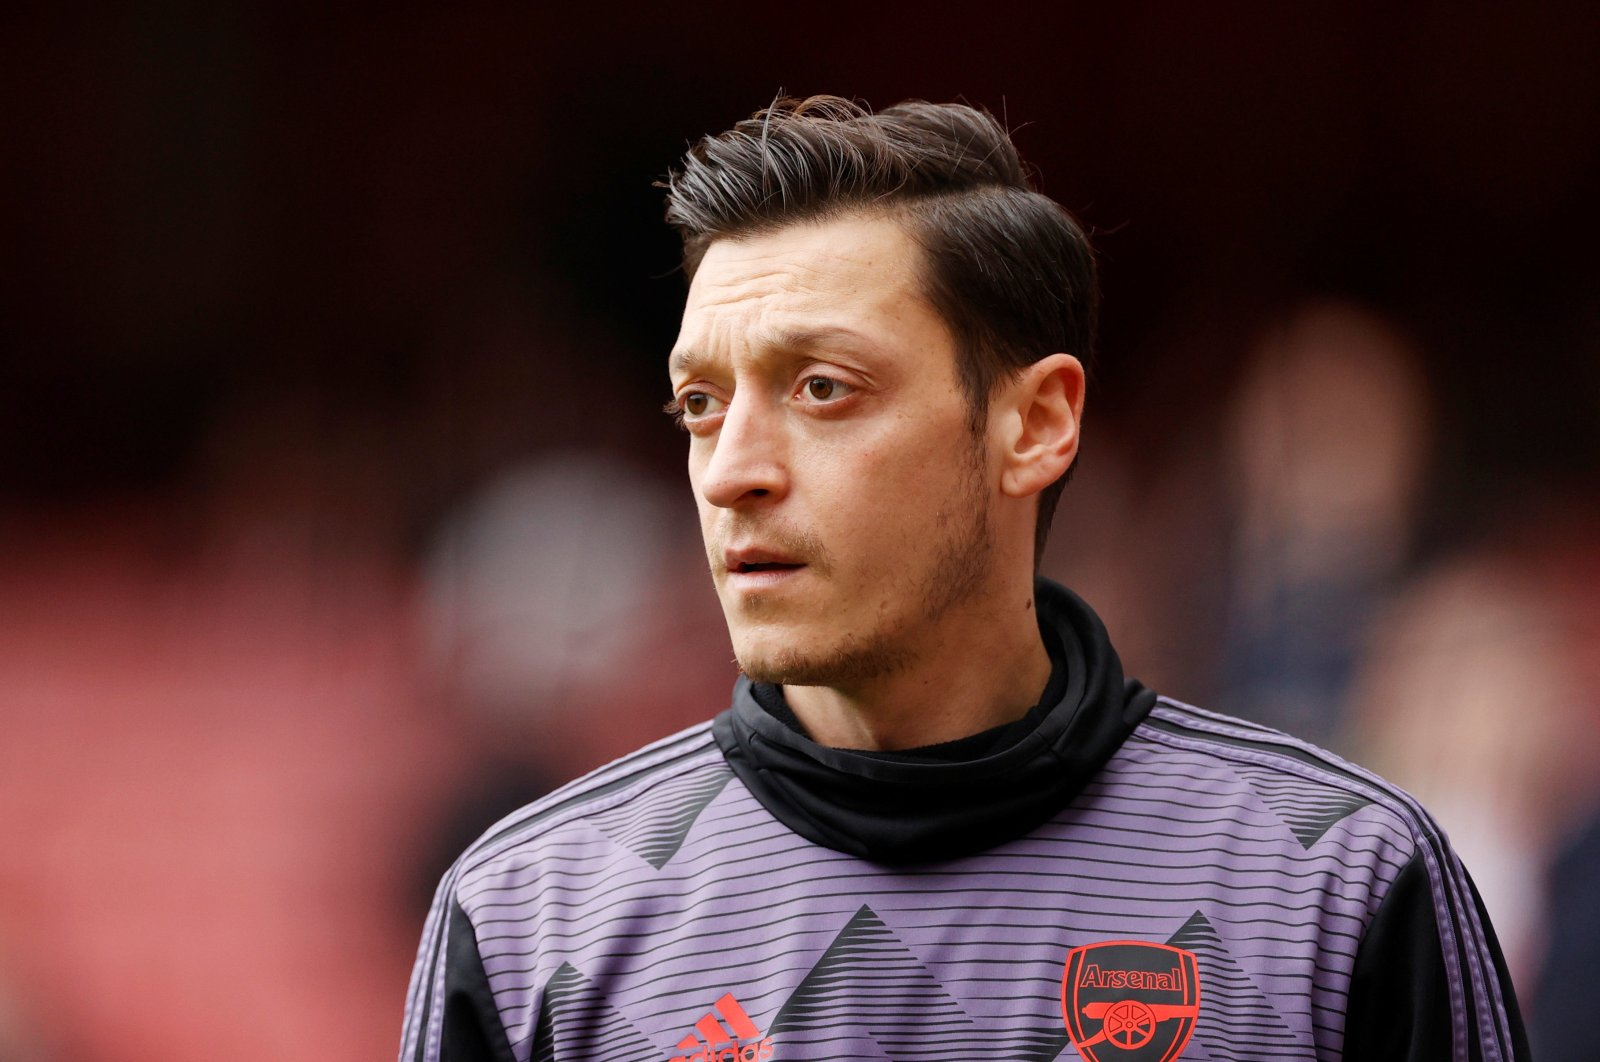 Arsenal's Mesut Özil during the warm-up before a match against West Ham United, London, Britain, Saturday, March 7, 2020. (Reuters Photo)